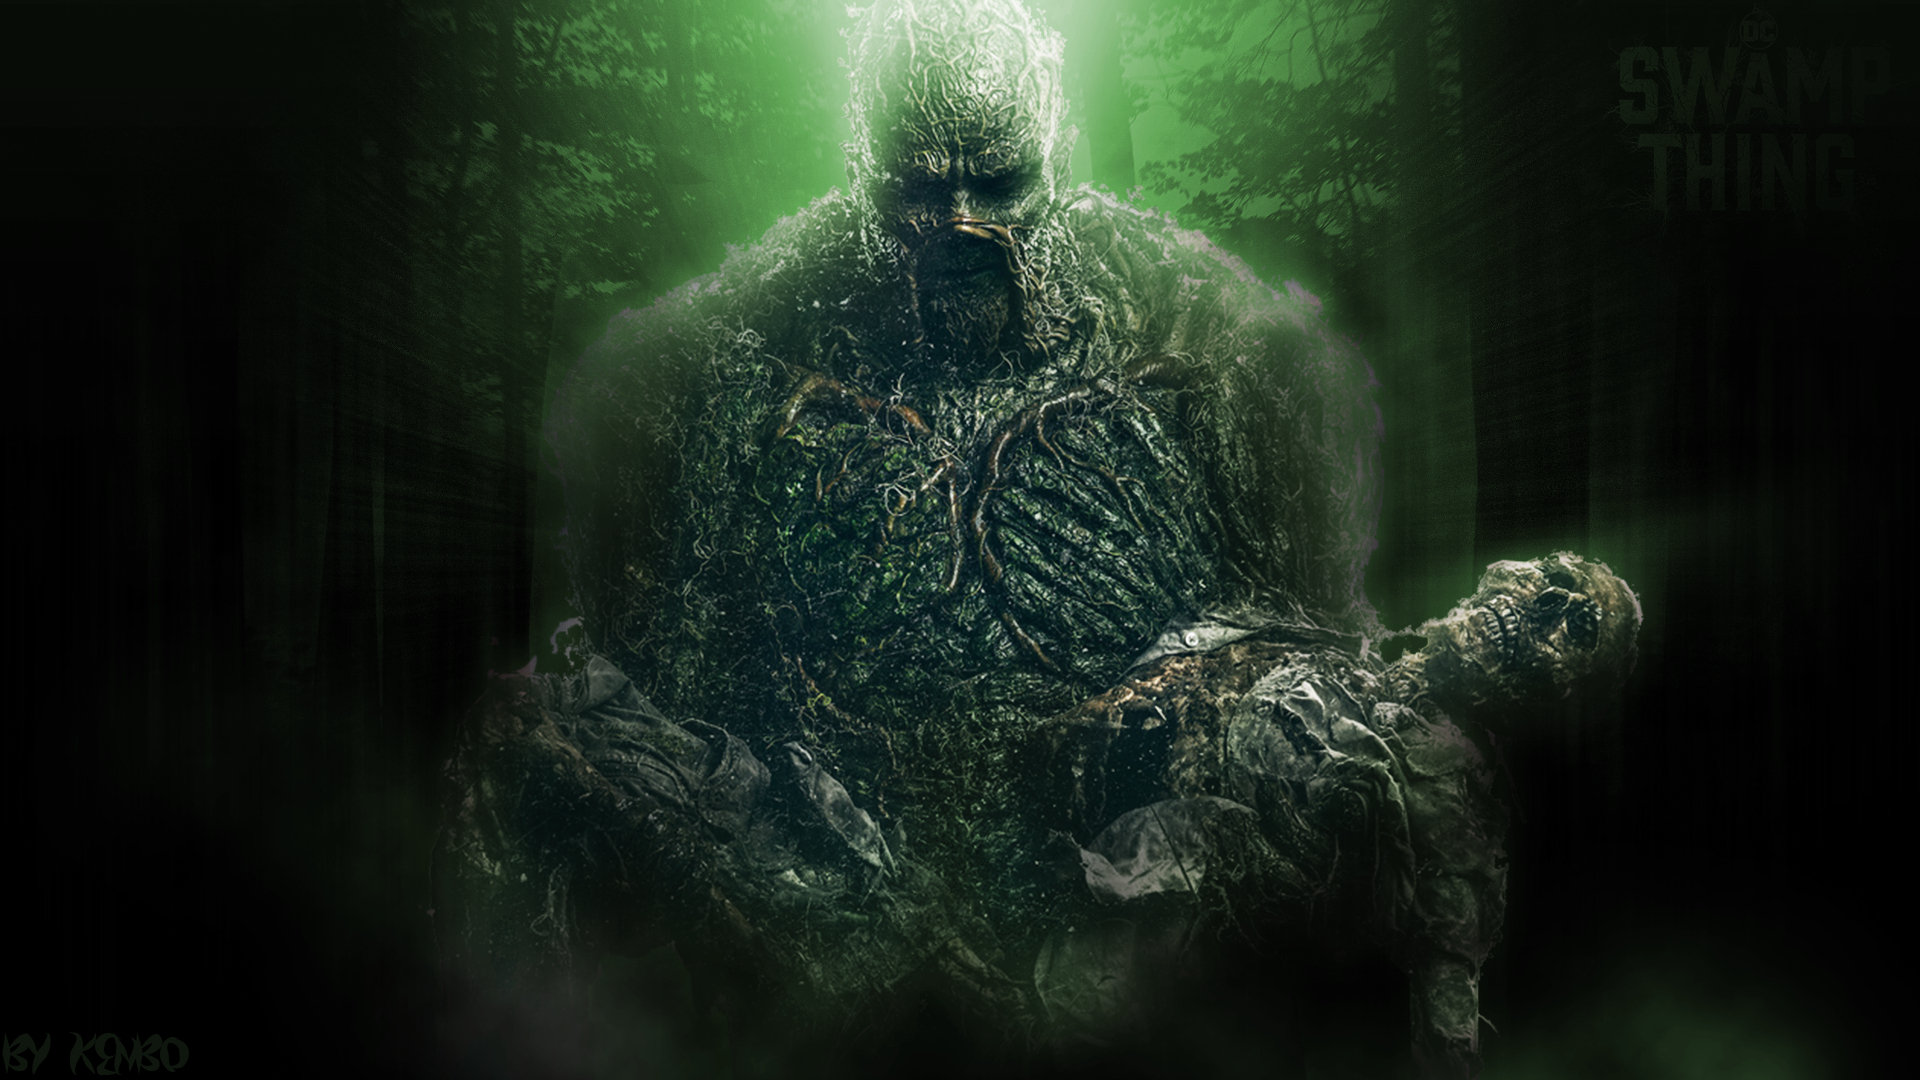 Swamp Thing Season 2 May Happen, Saved From Cancellation